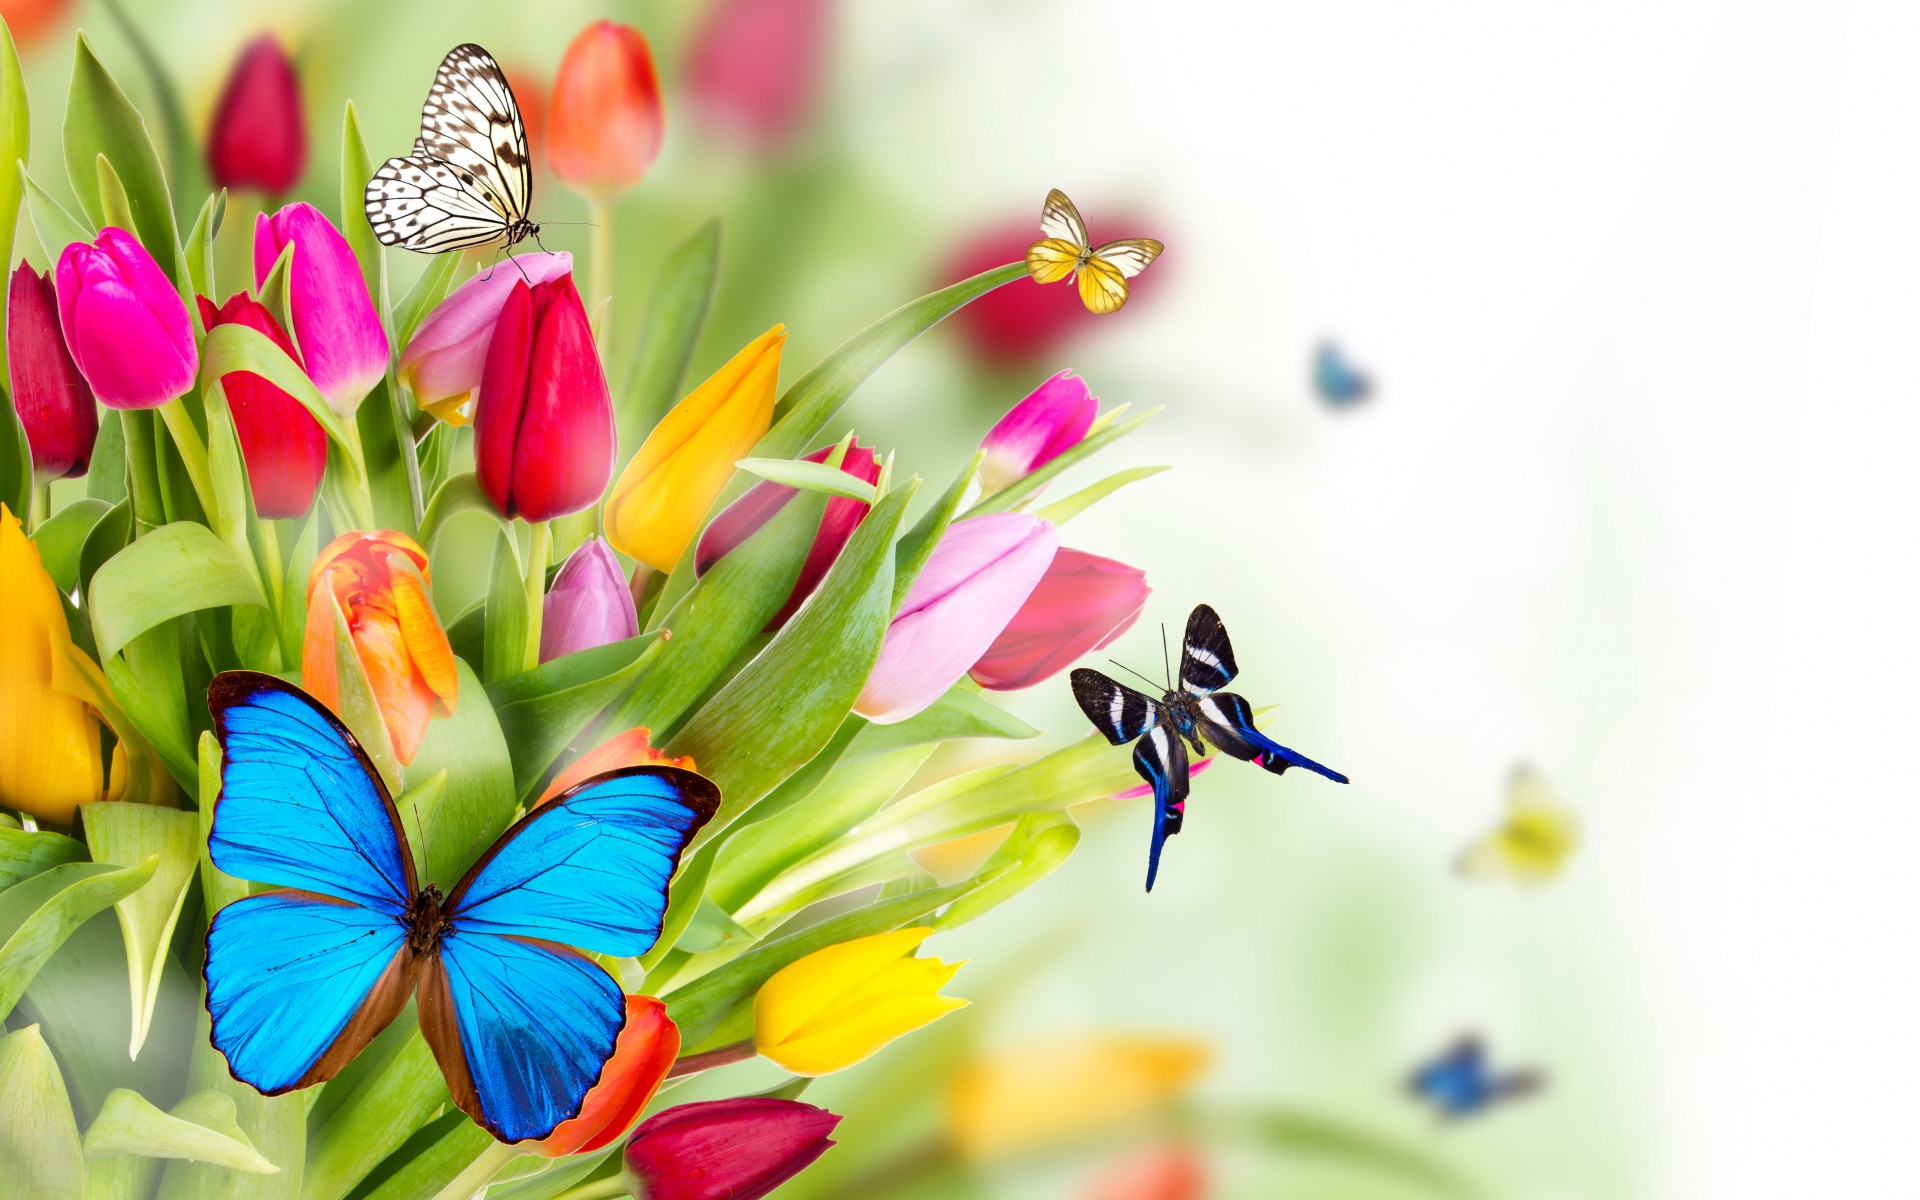 spring flowers tulips butterflies bokeh art summer